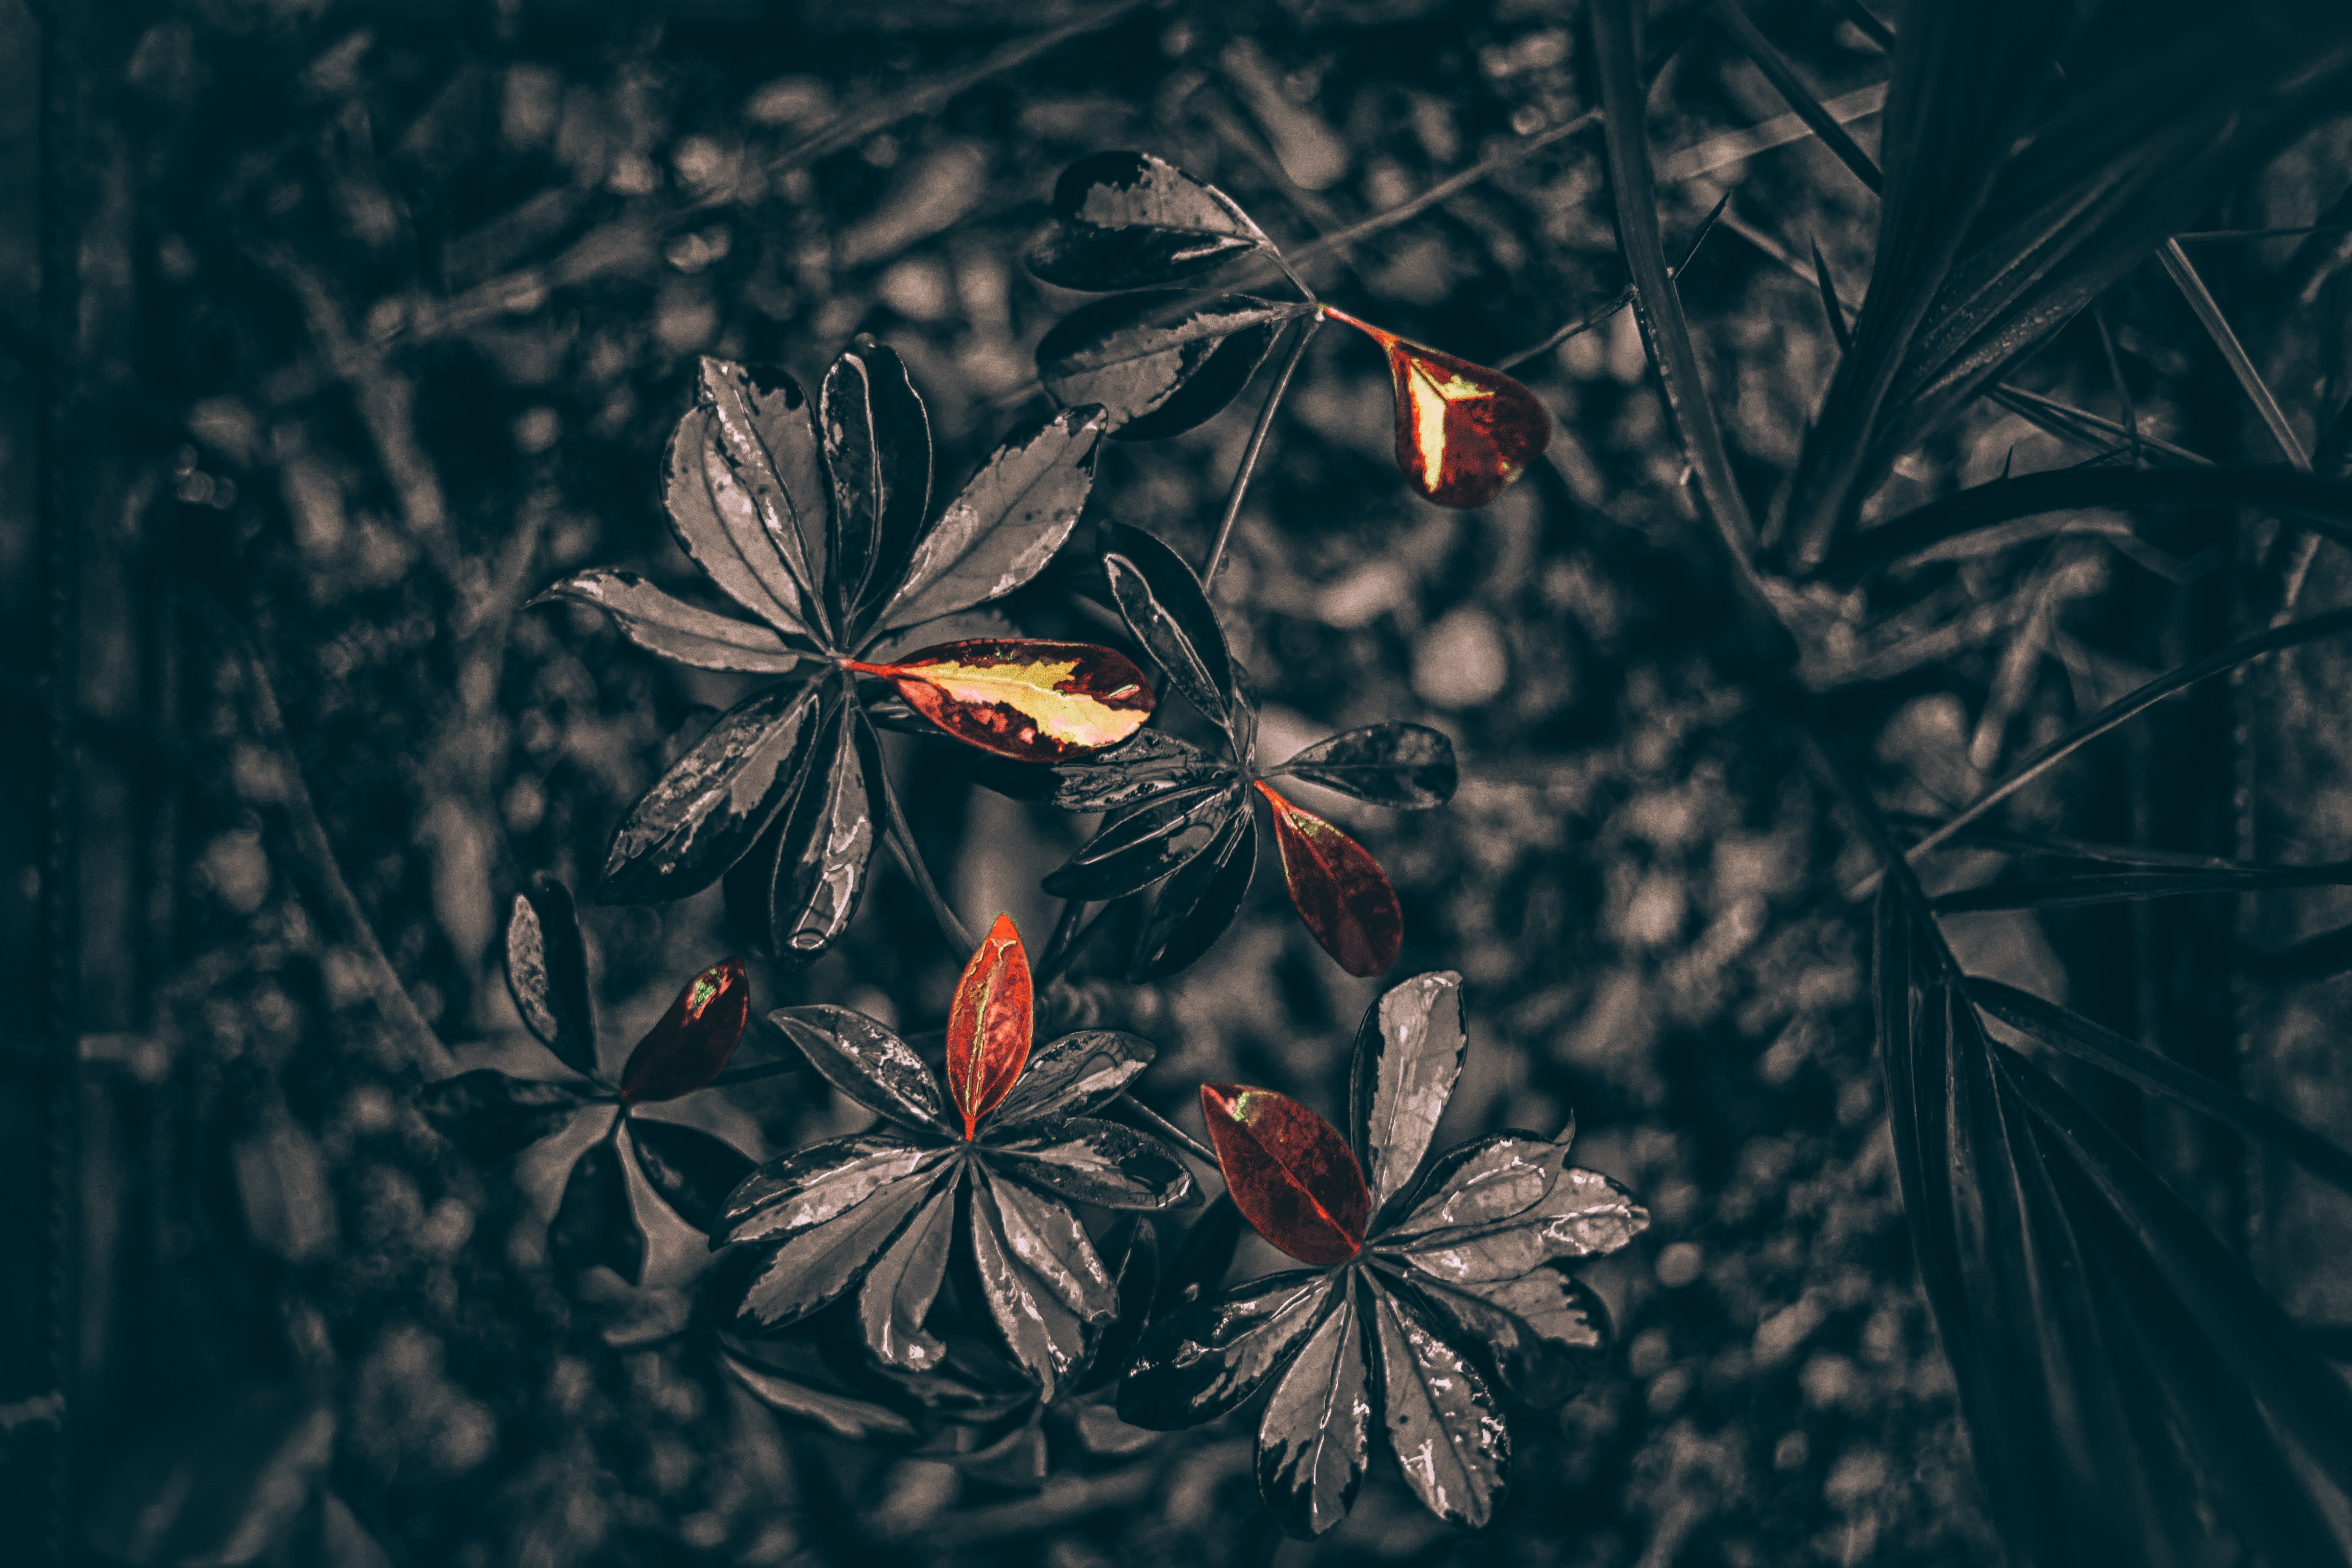 137472 download wallpaper Leaves, Drops, Plant, Macro screensavers and pictures for free